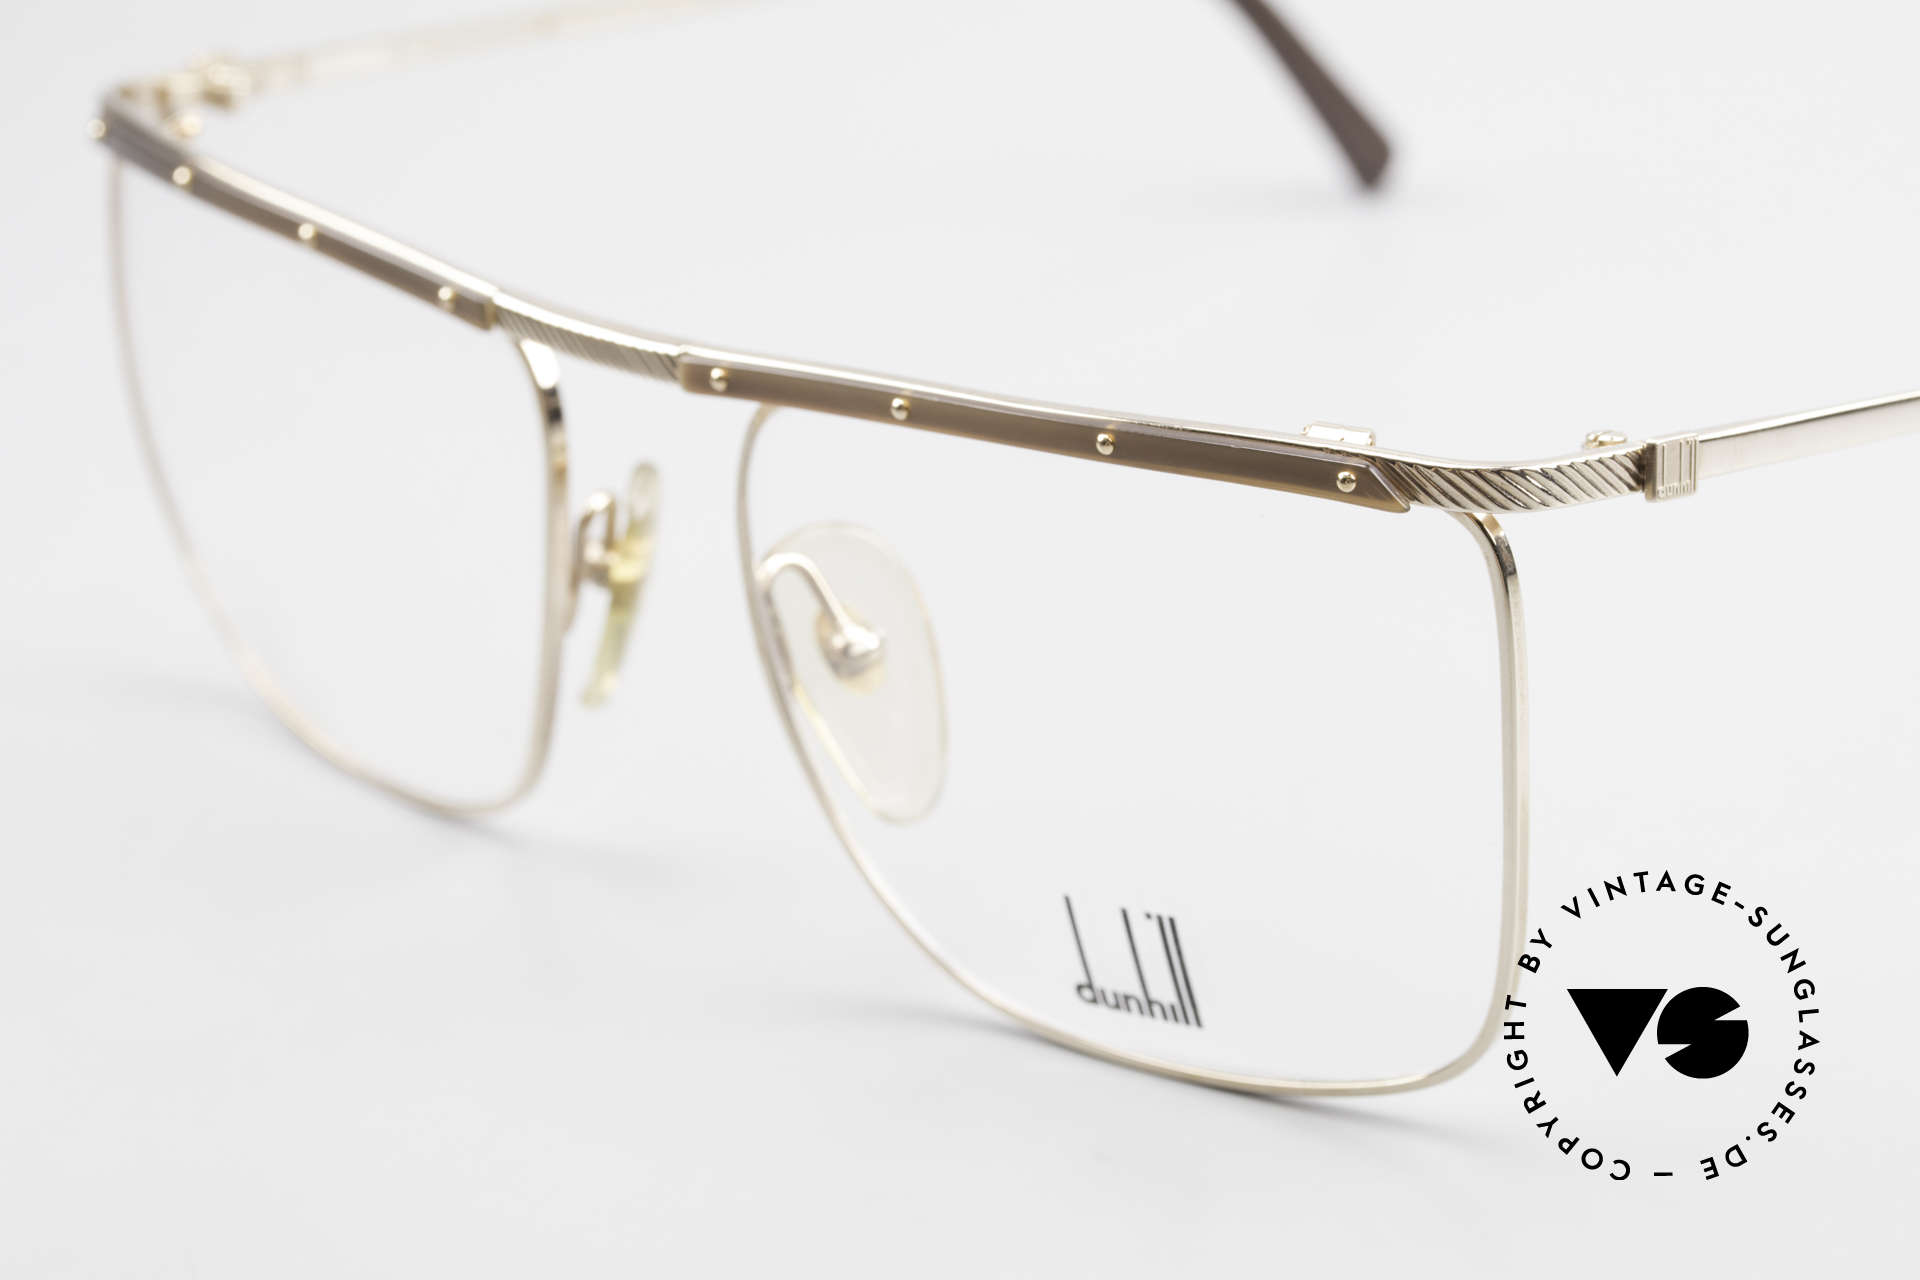 Dunhill 6056 Genuine Horn Trims 80's Frame, a true vintage 80's classic in top-notch quality, Made for Men